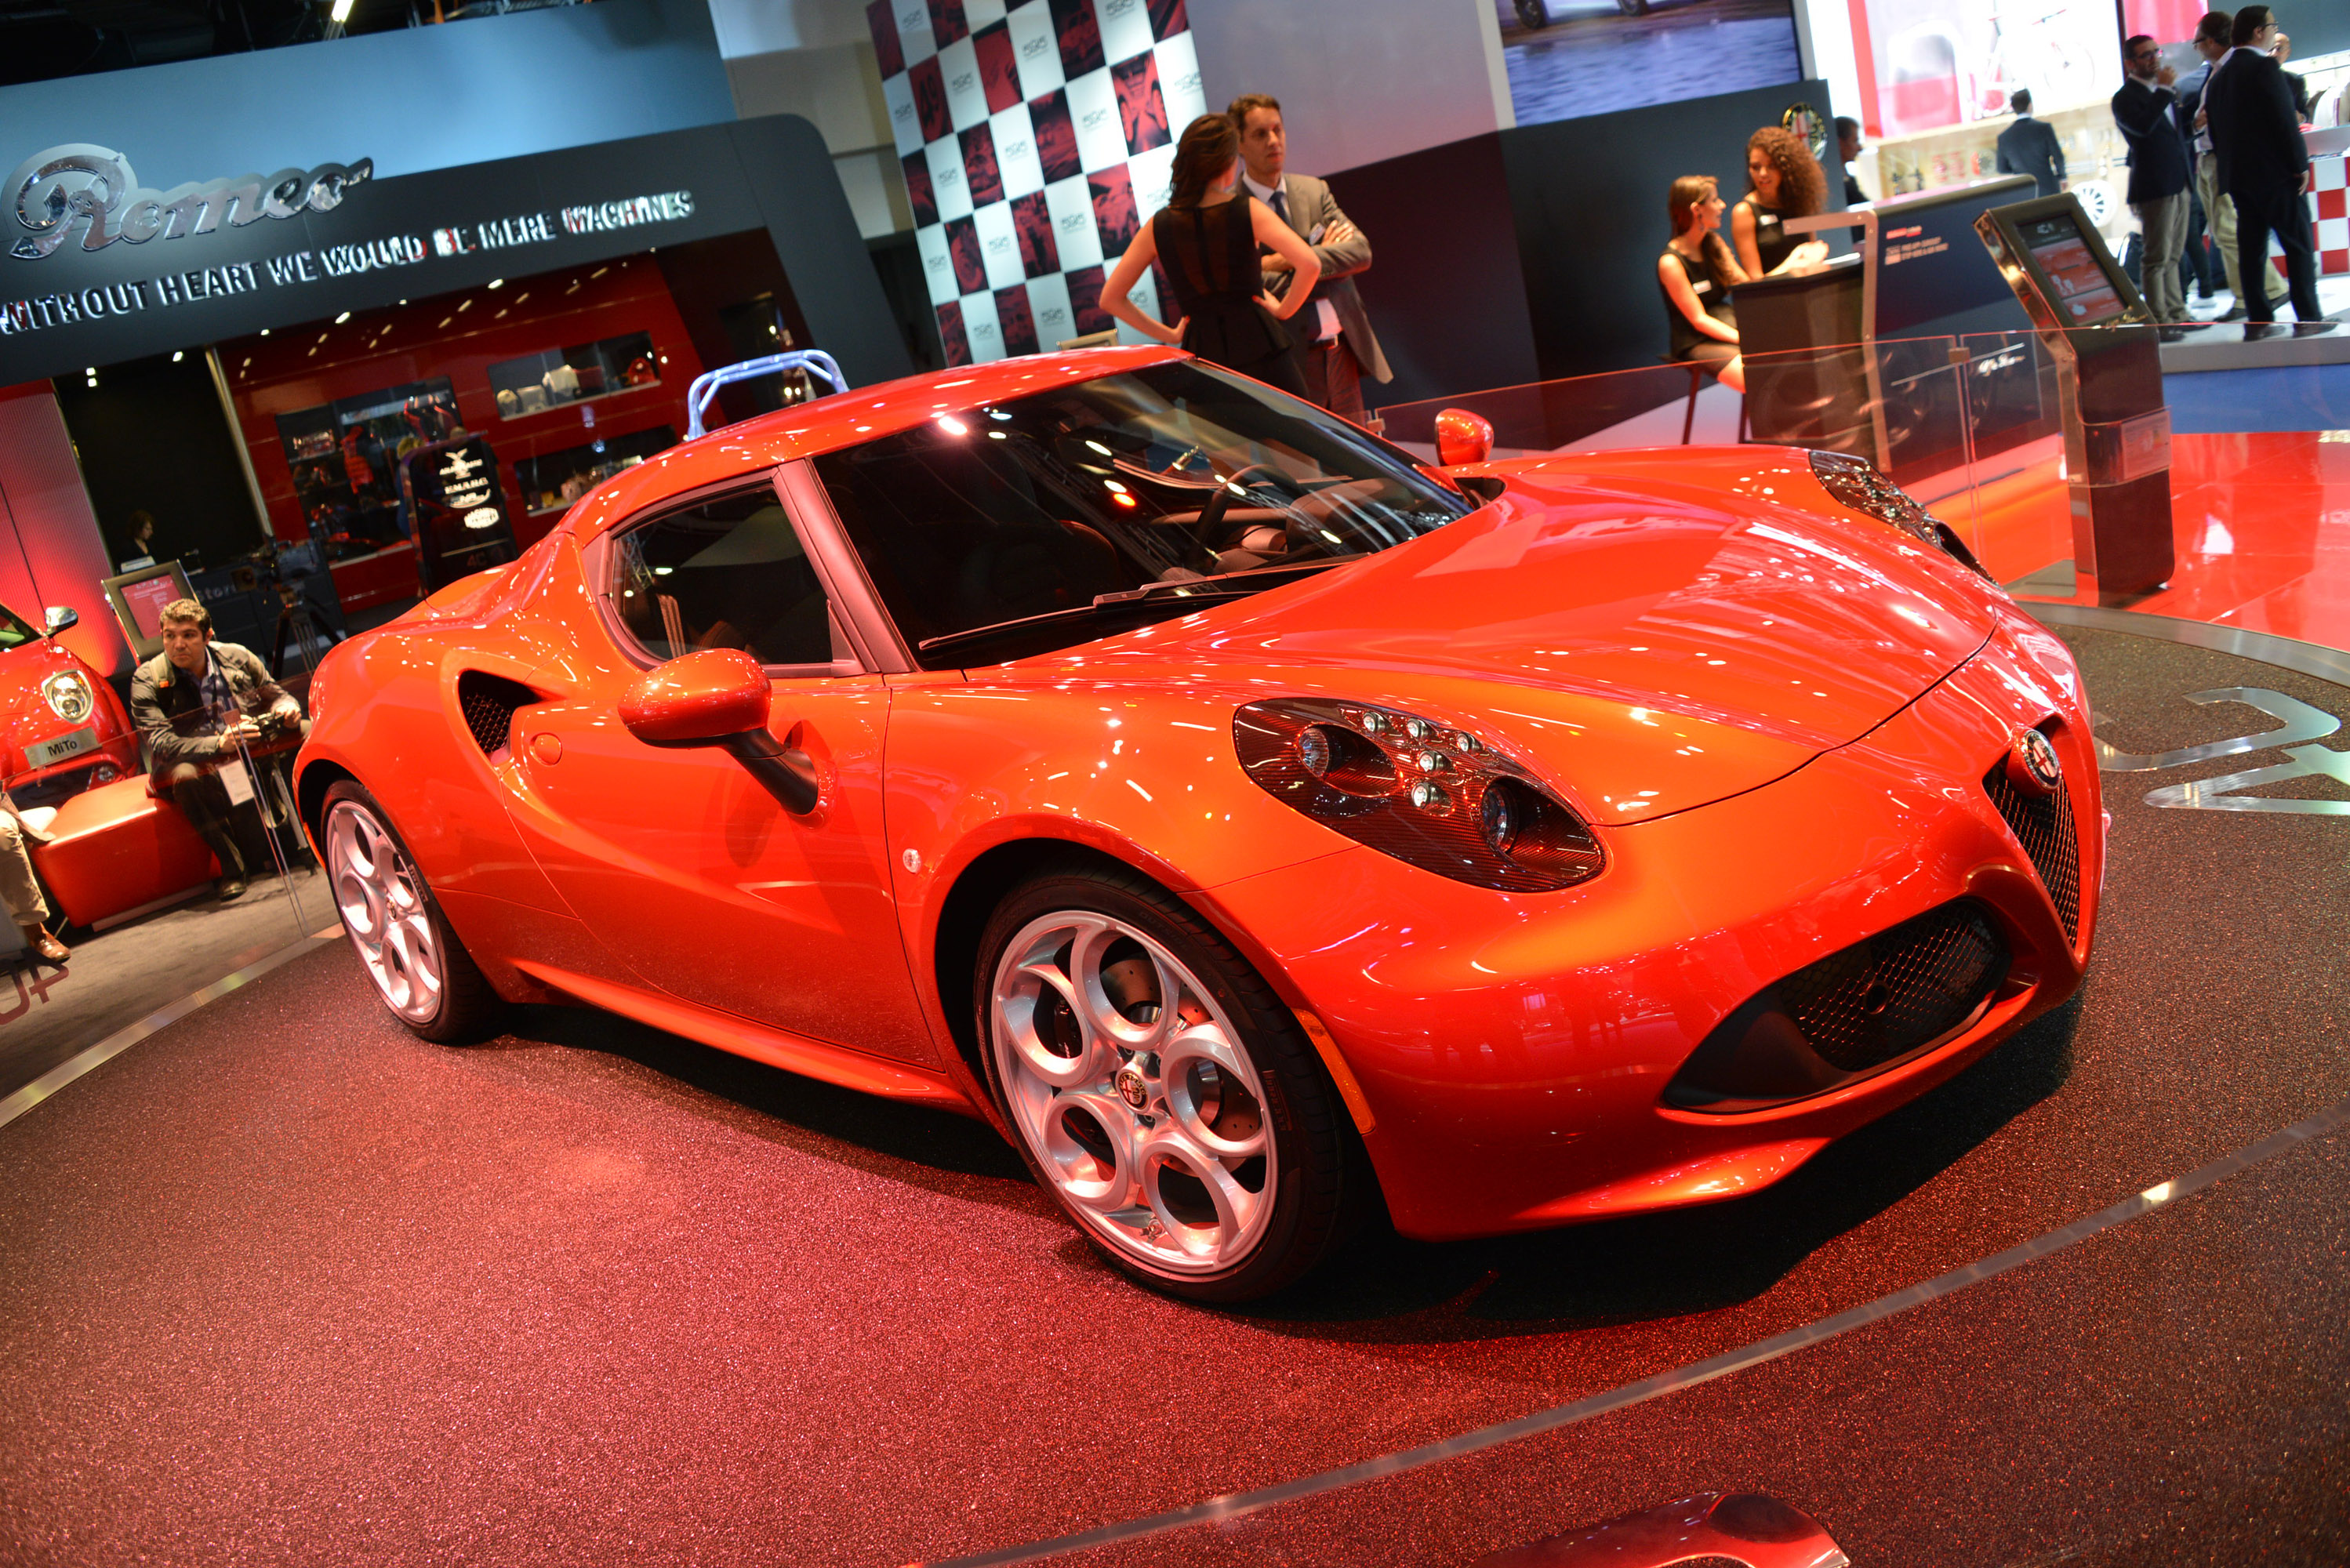 Alfa Romeo 4C Most Beautiful Car of the Year 2013 Says Internet Survey